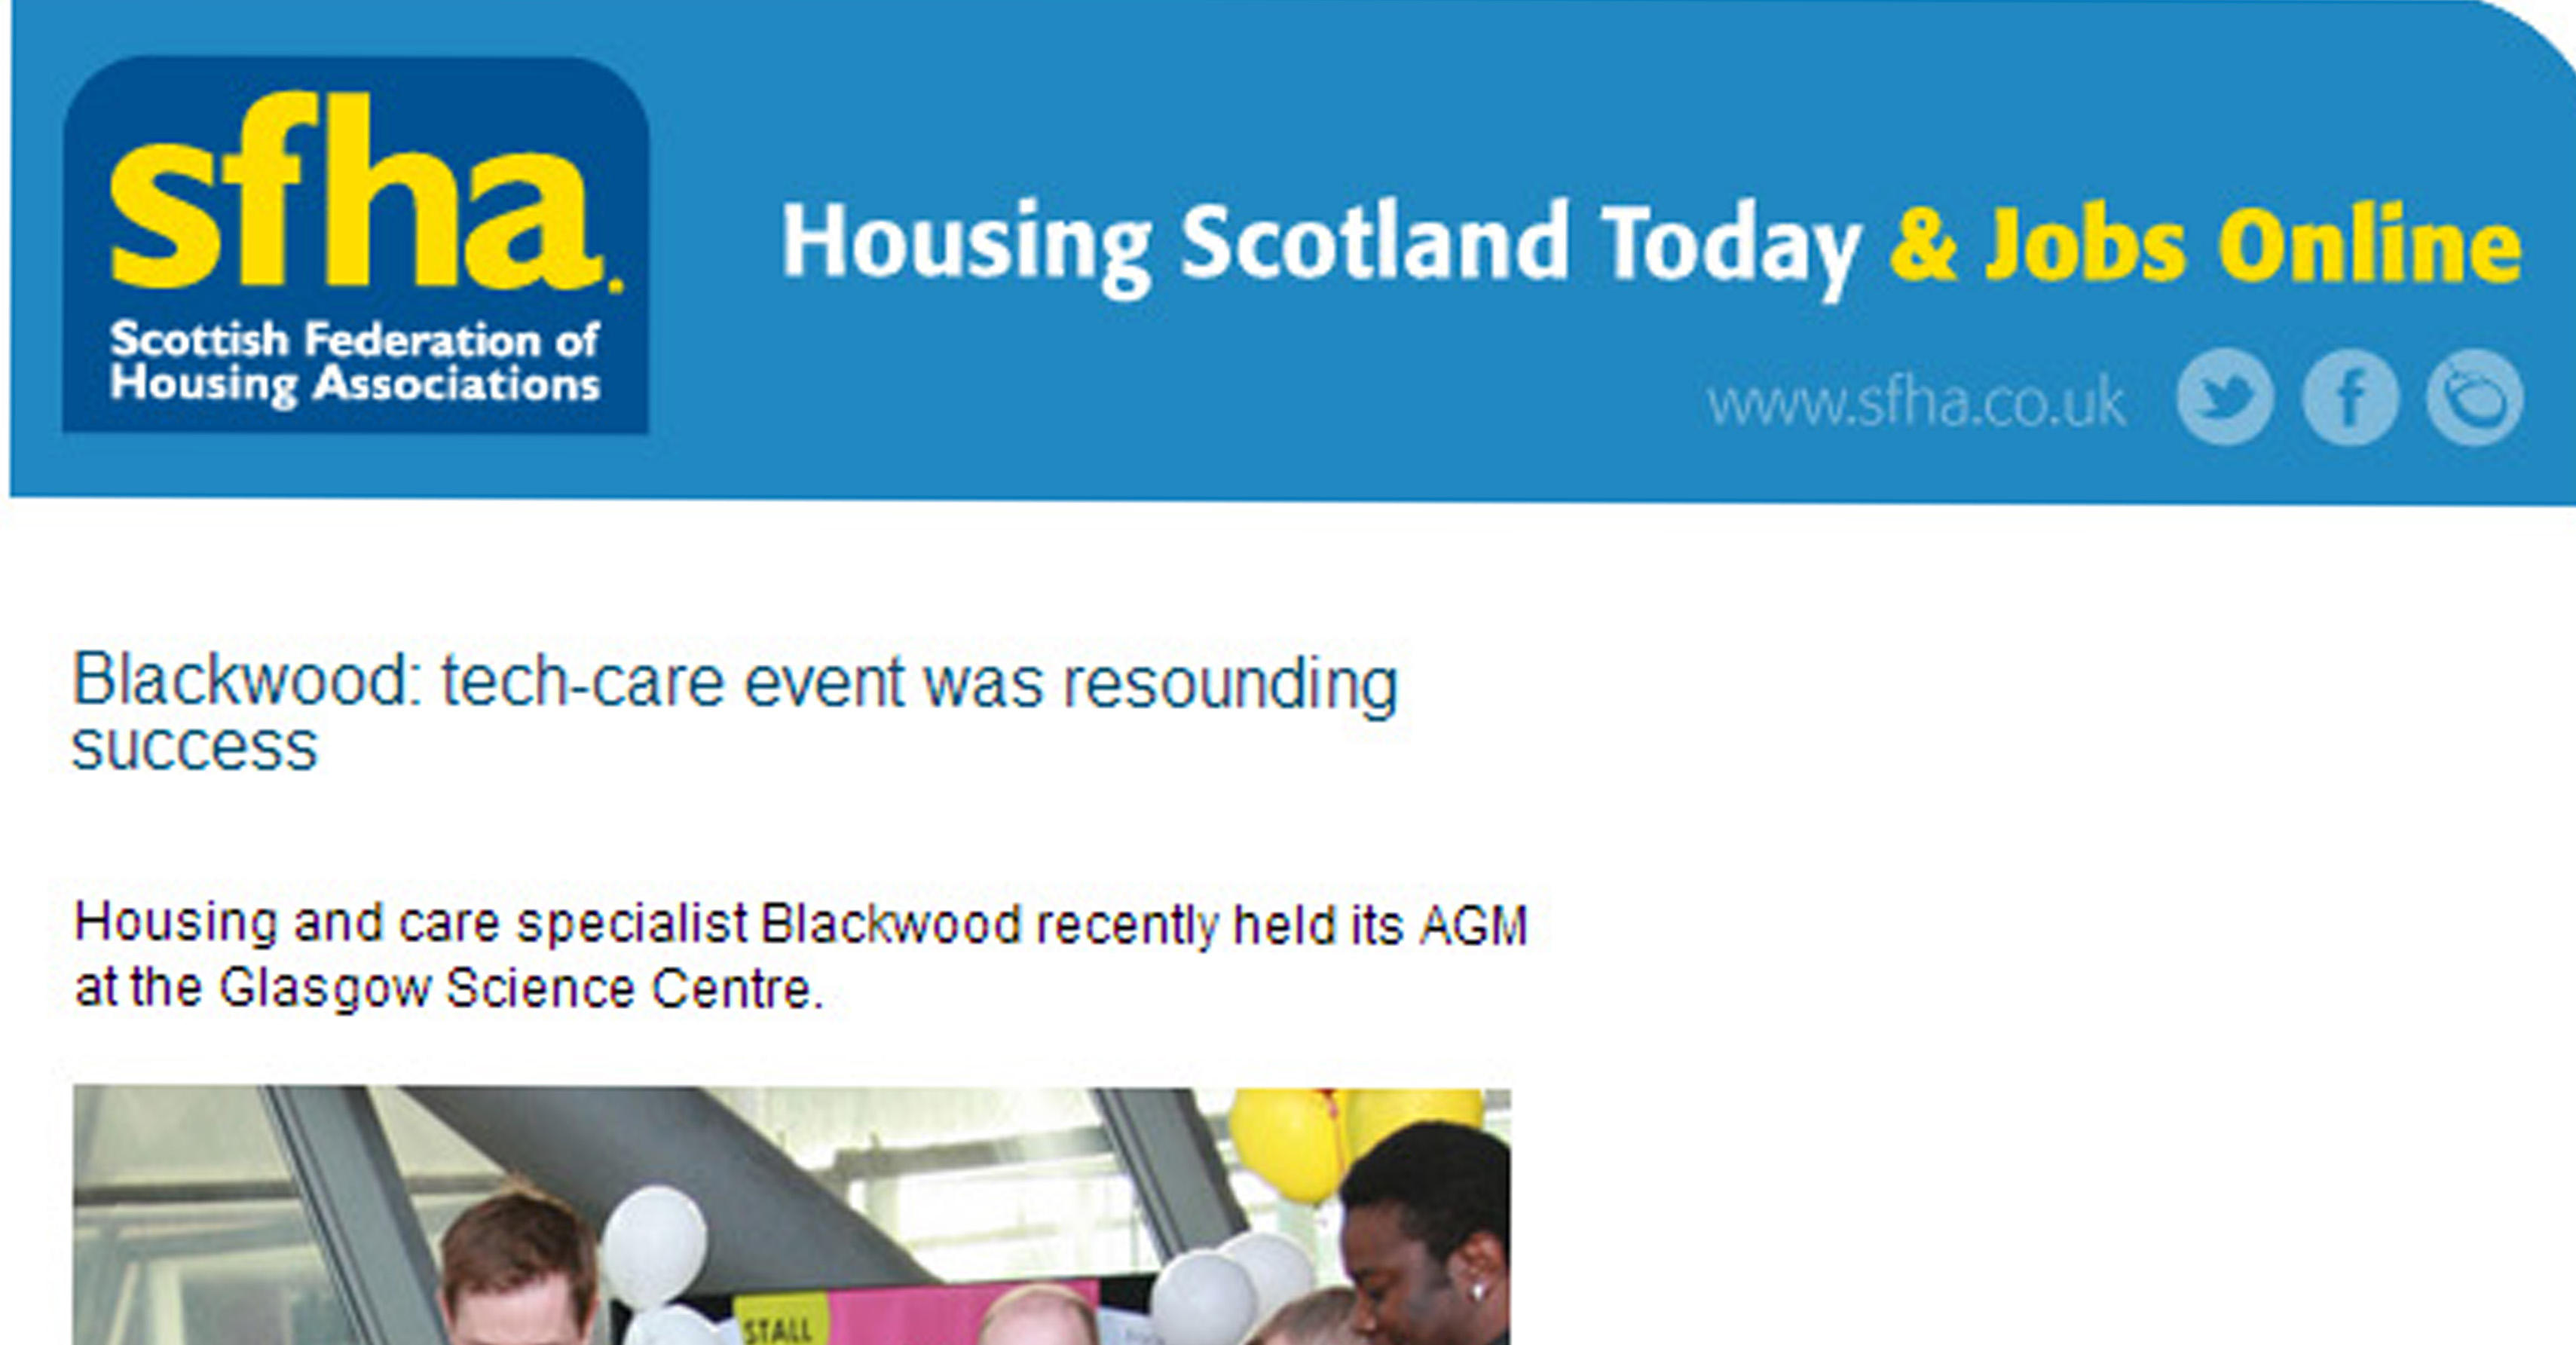 24 SEP Housingscotlandtoday.com CROP